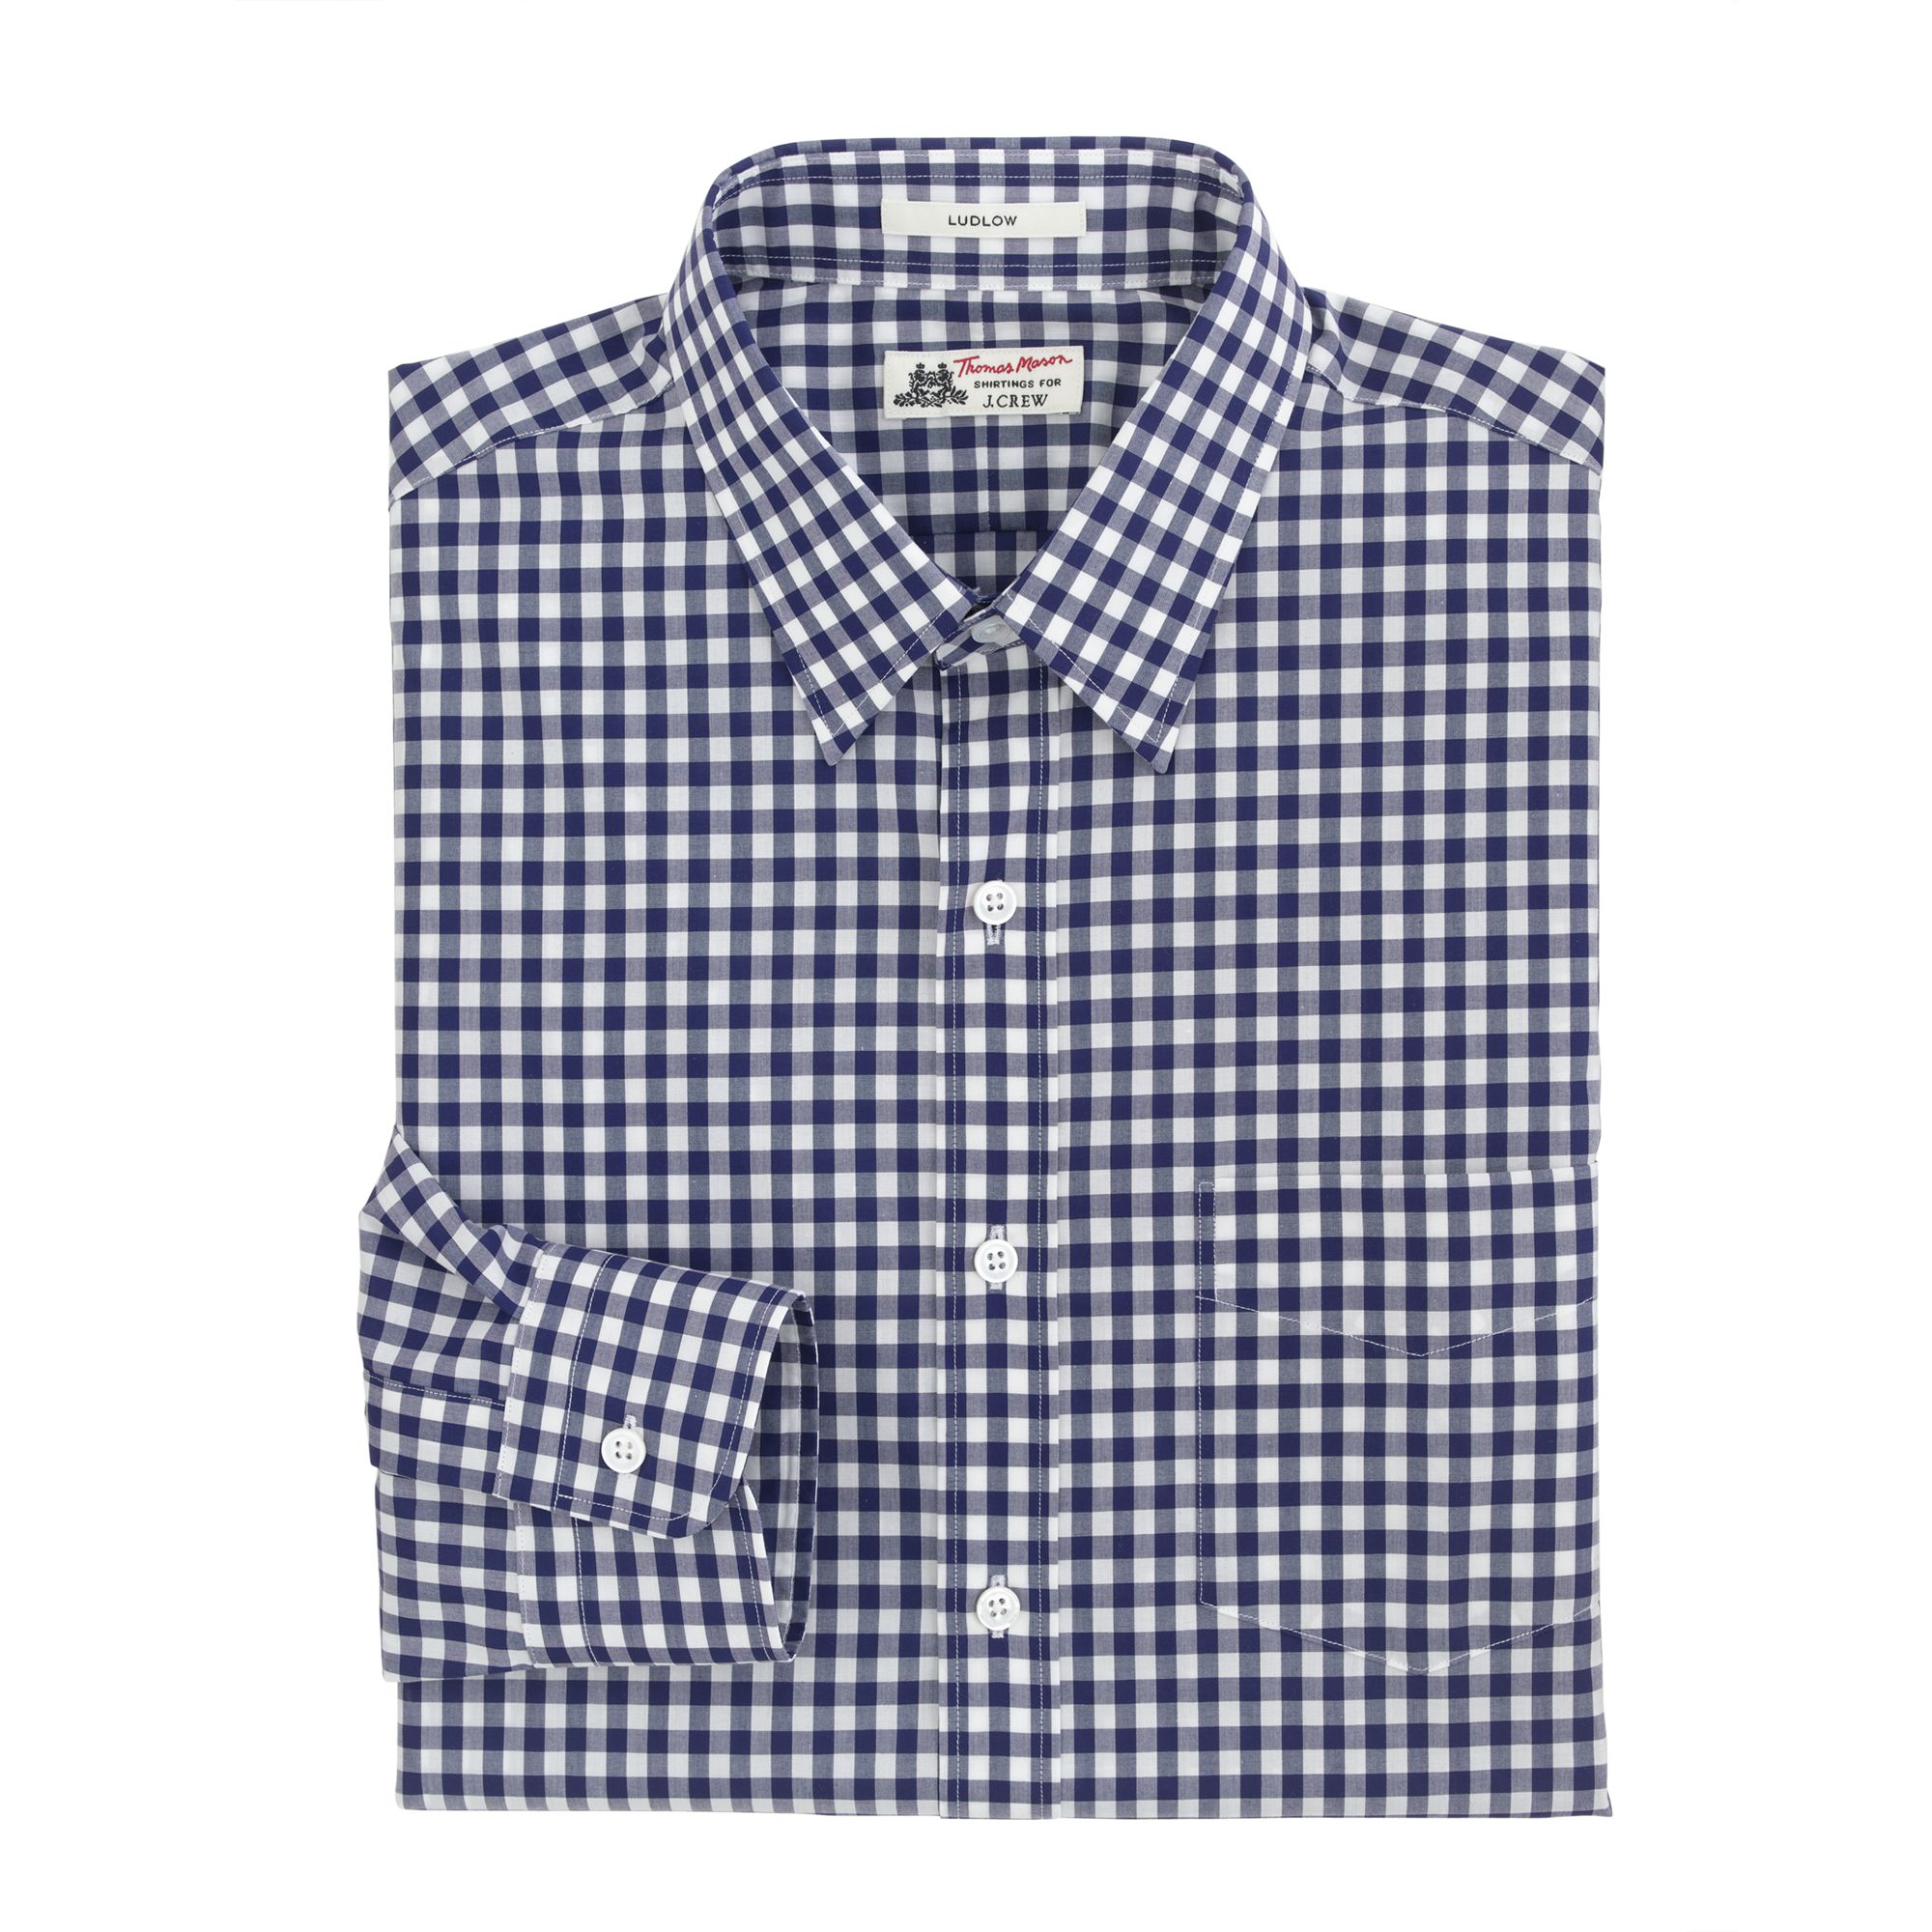 Lyst j crew thomas mason for j crew ludlow shirt in for Navy blue gingham shirt